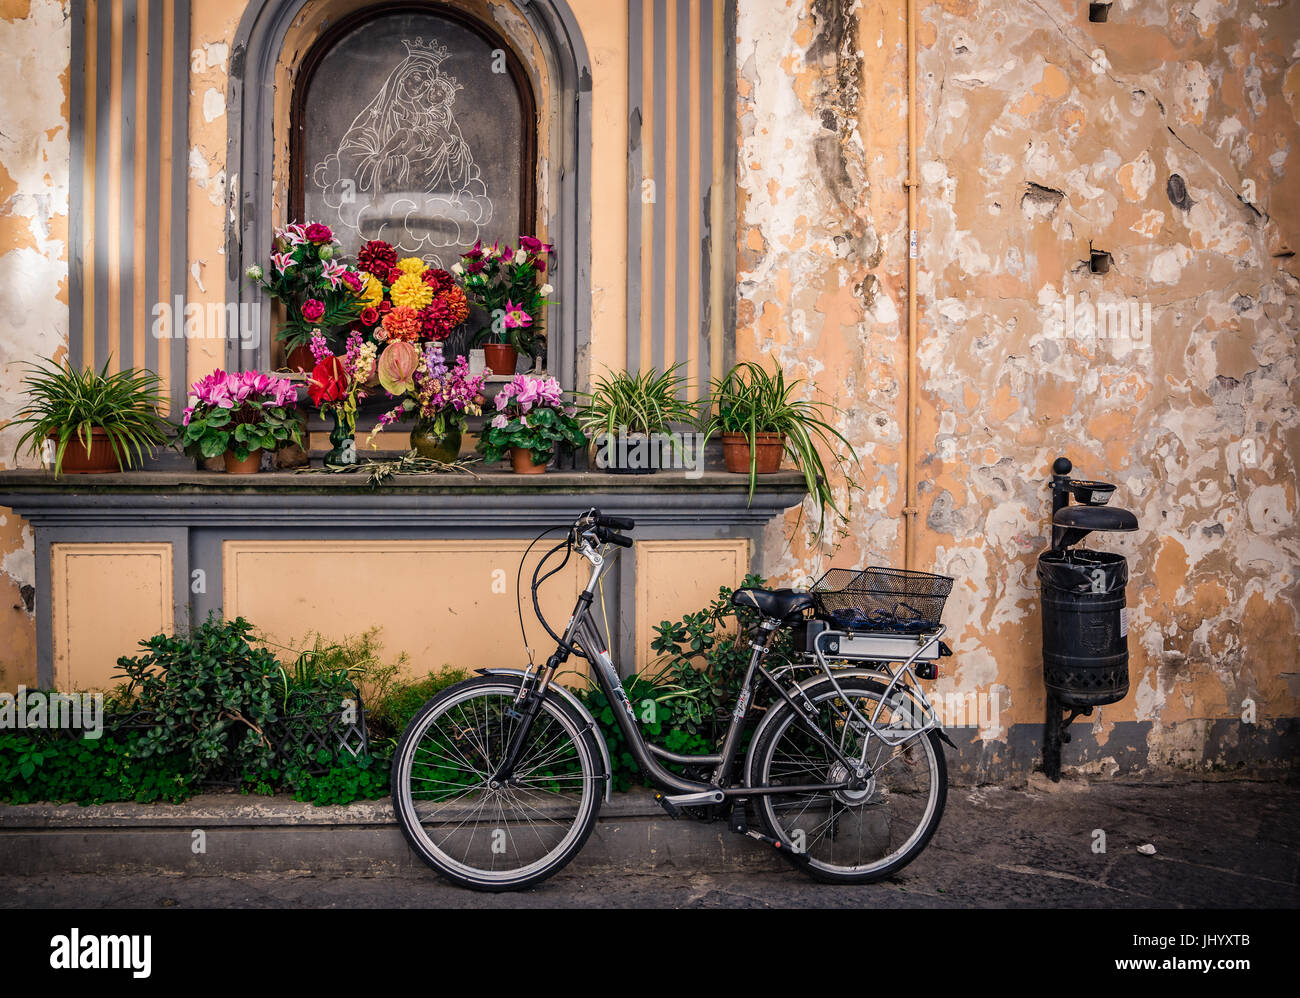 Bike and rustik wall with lot of flowers and Virgin Mary drawing - Stock Image